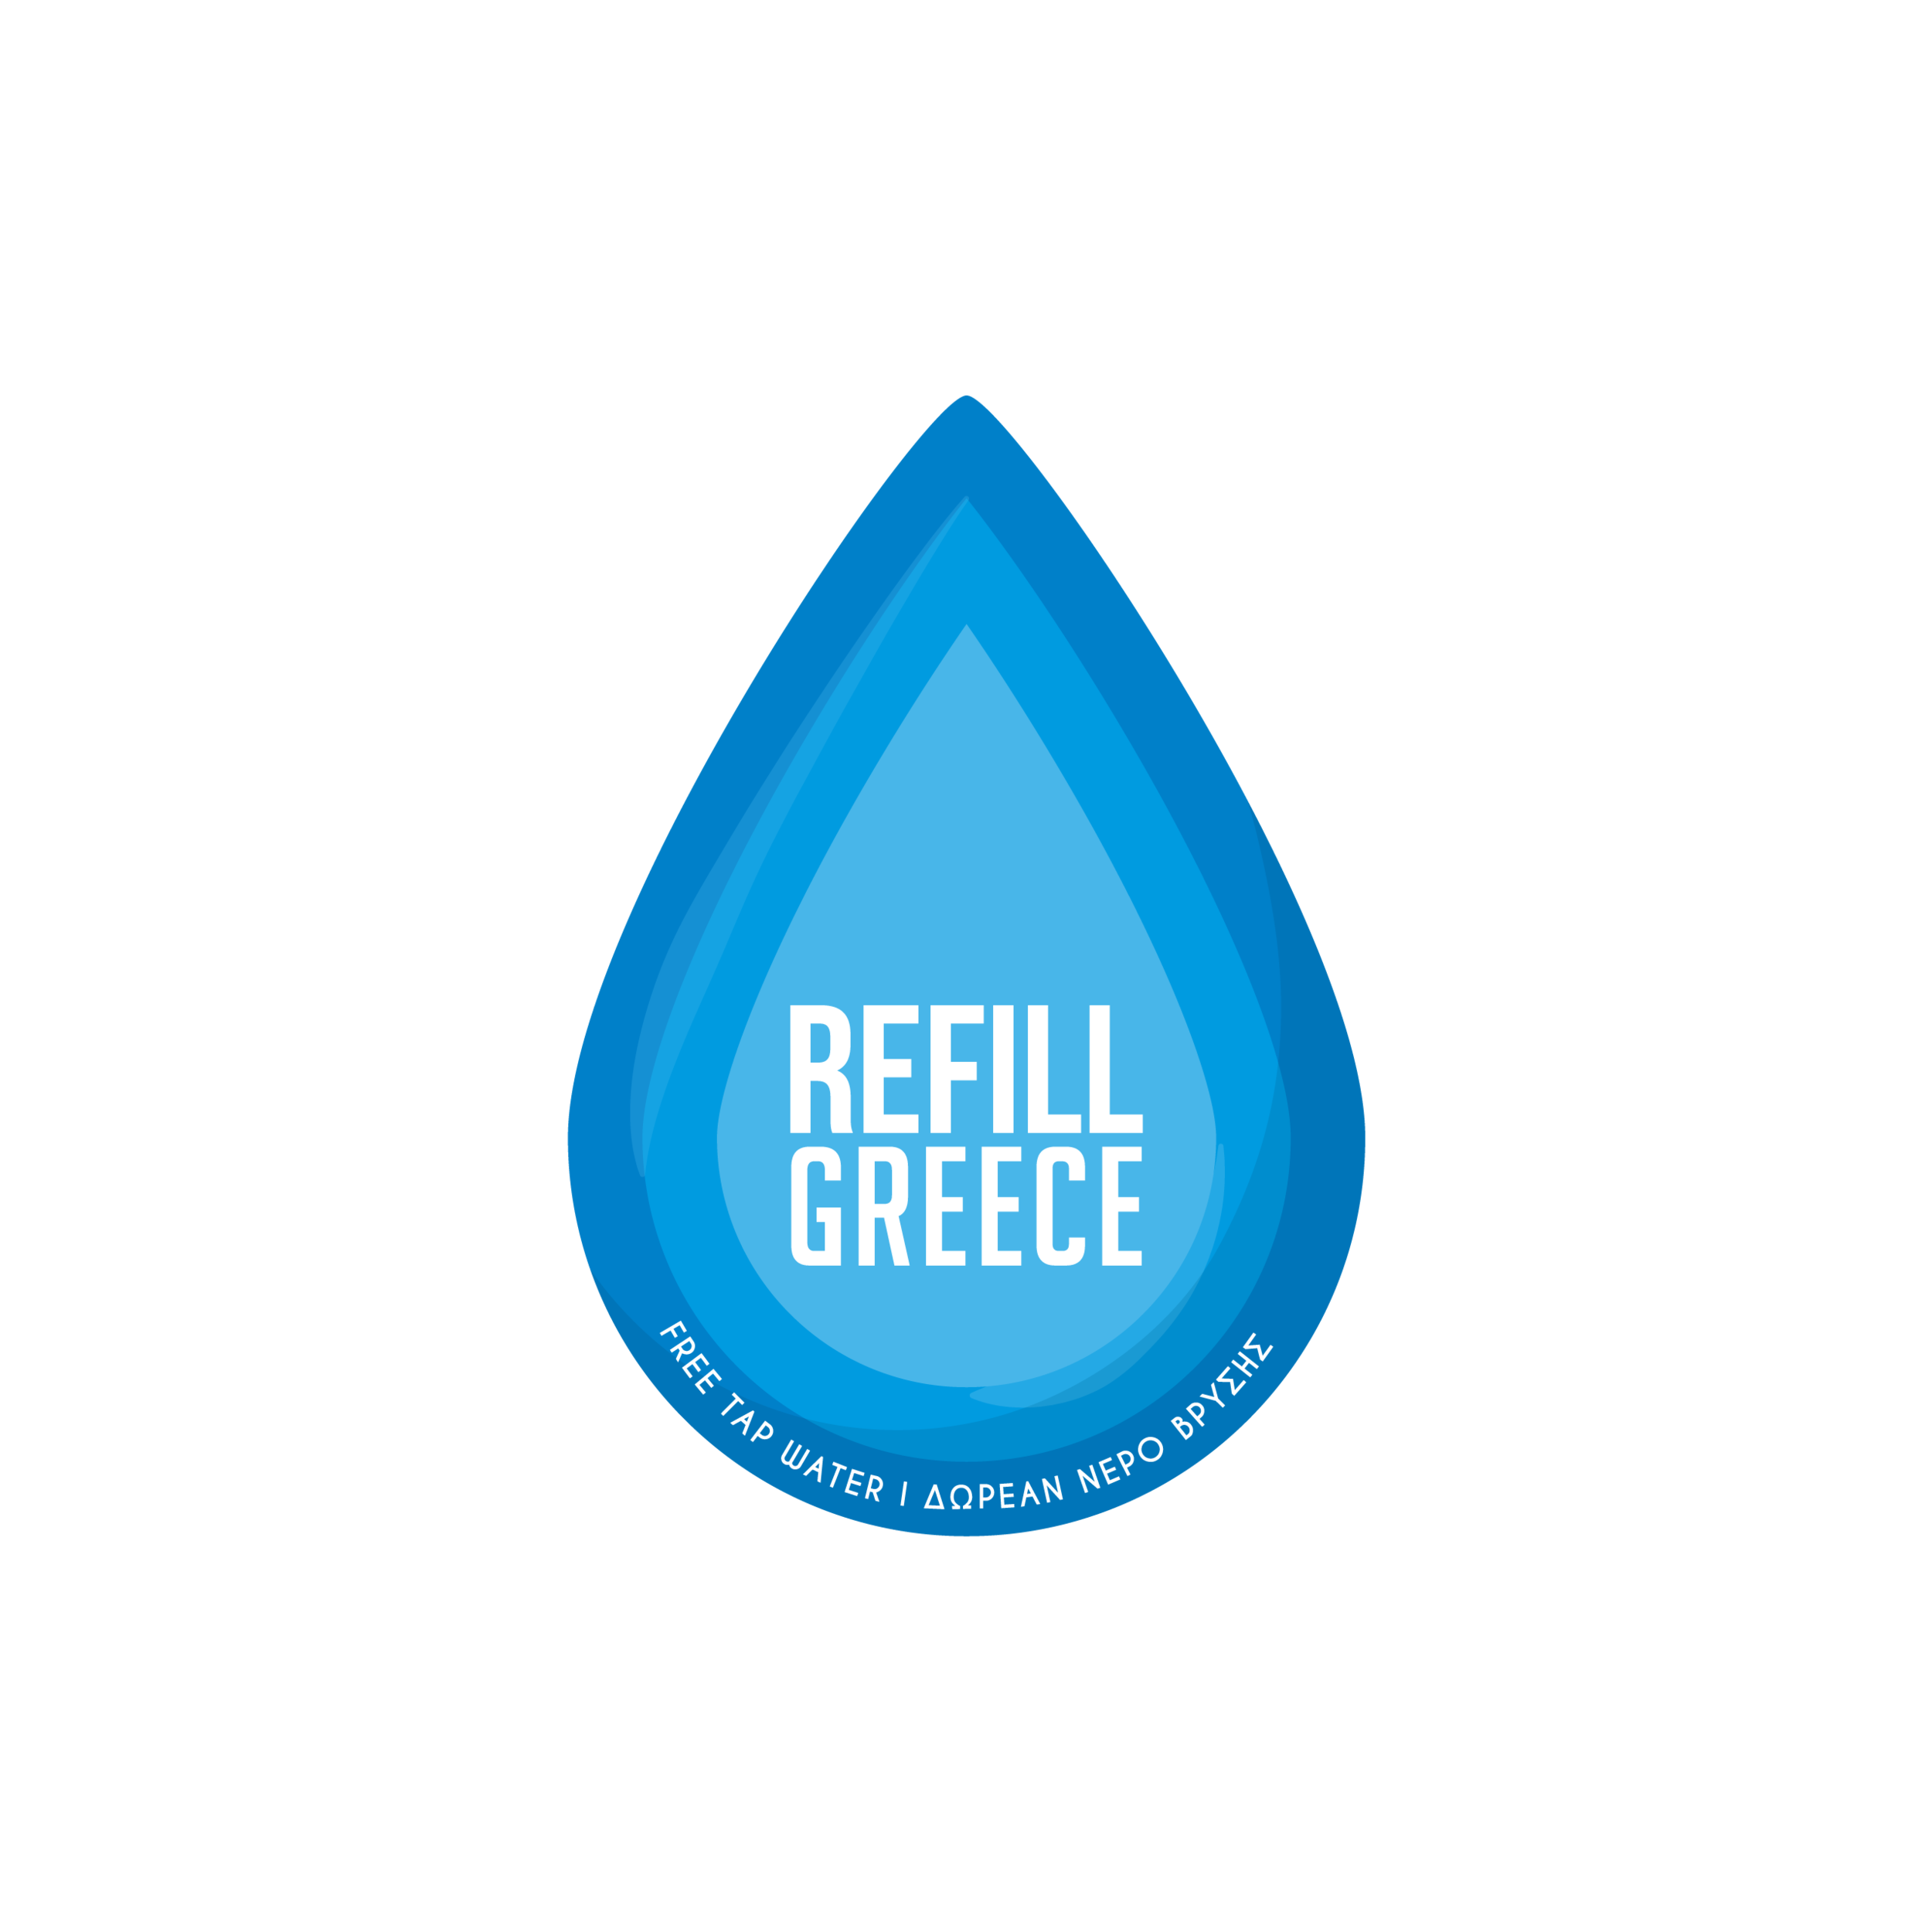 refill-logo-color-png.png